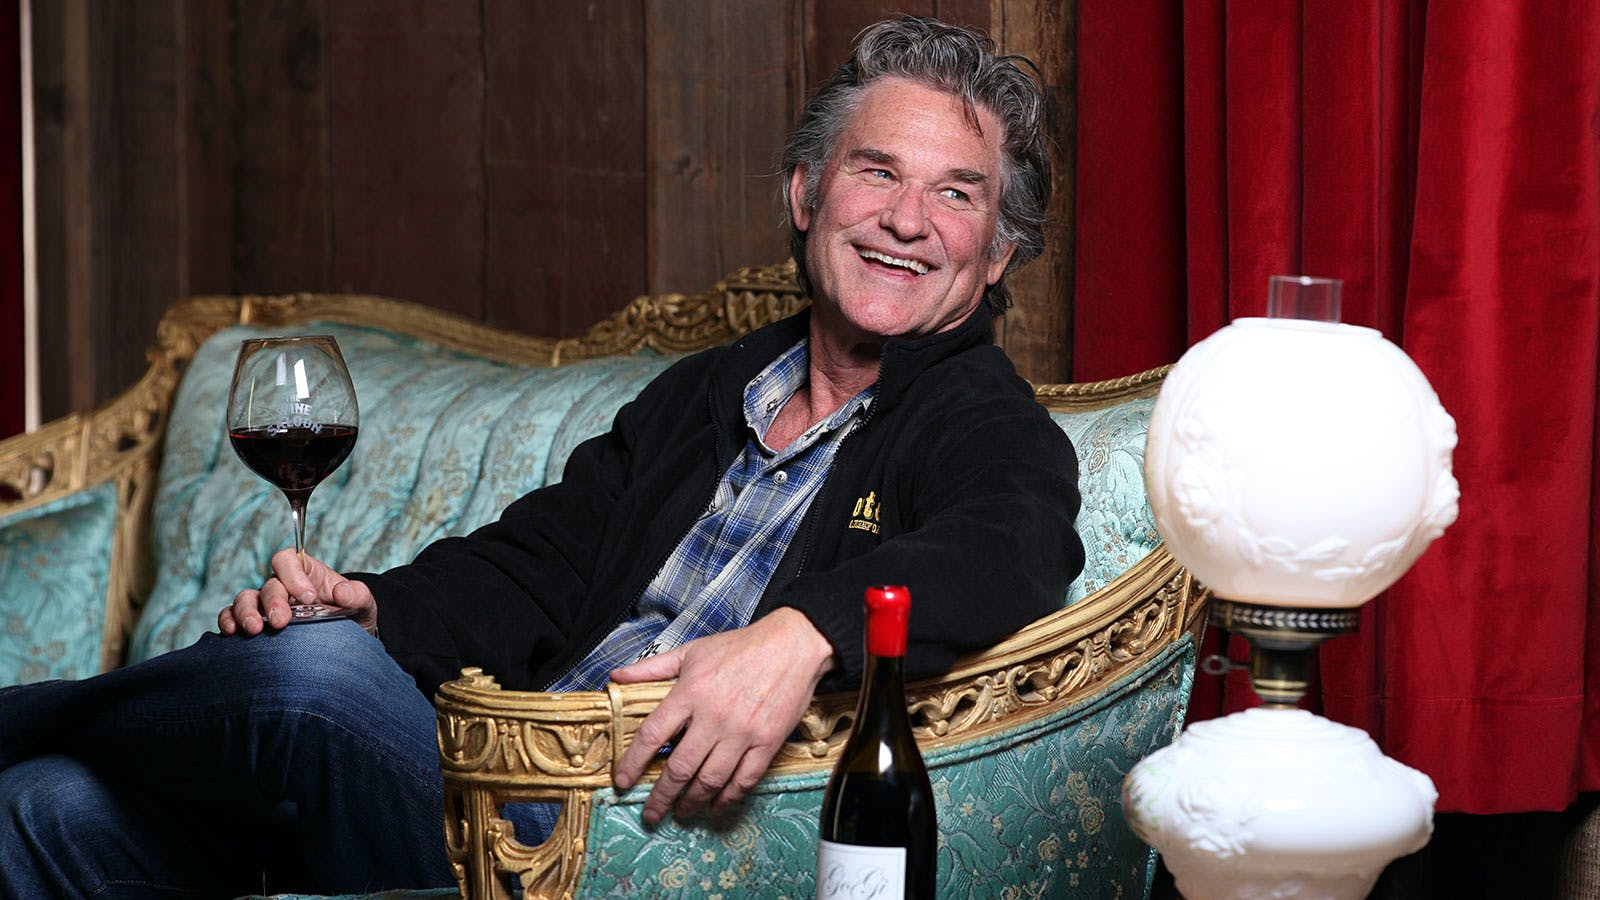 Chasing Burgundy: Kurt Russell Chats Live About His Pinot Noir Project